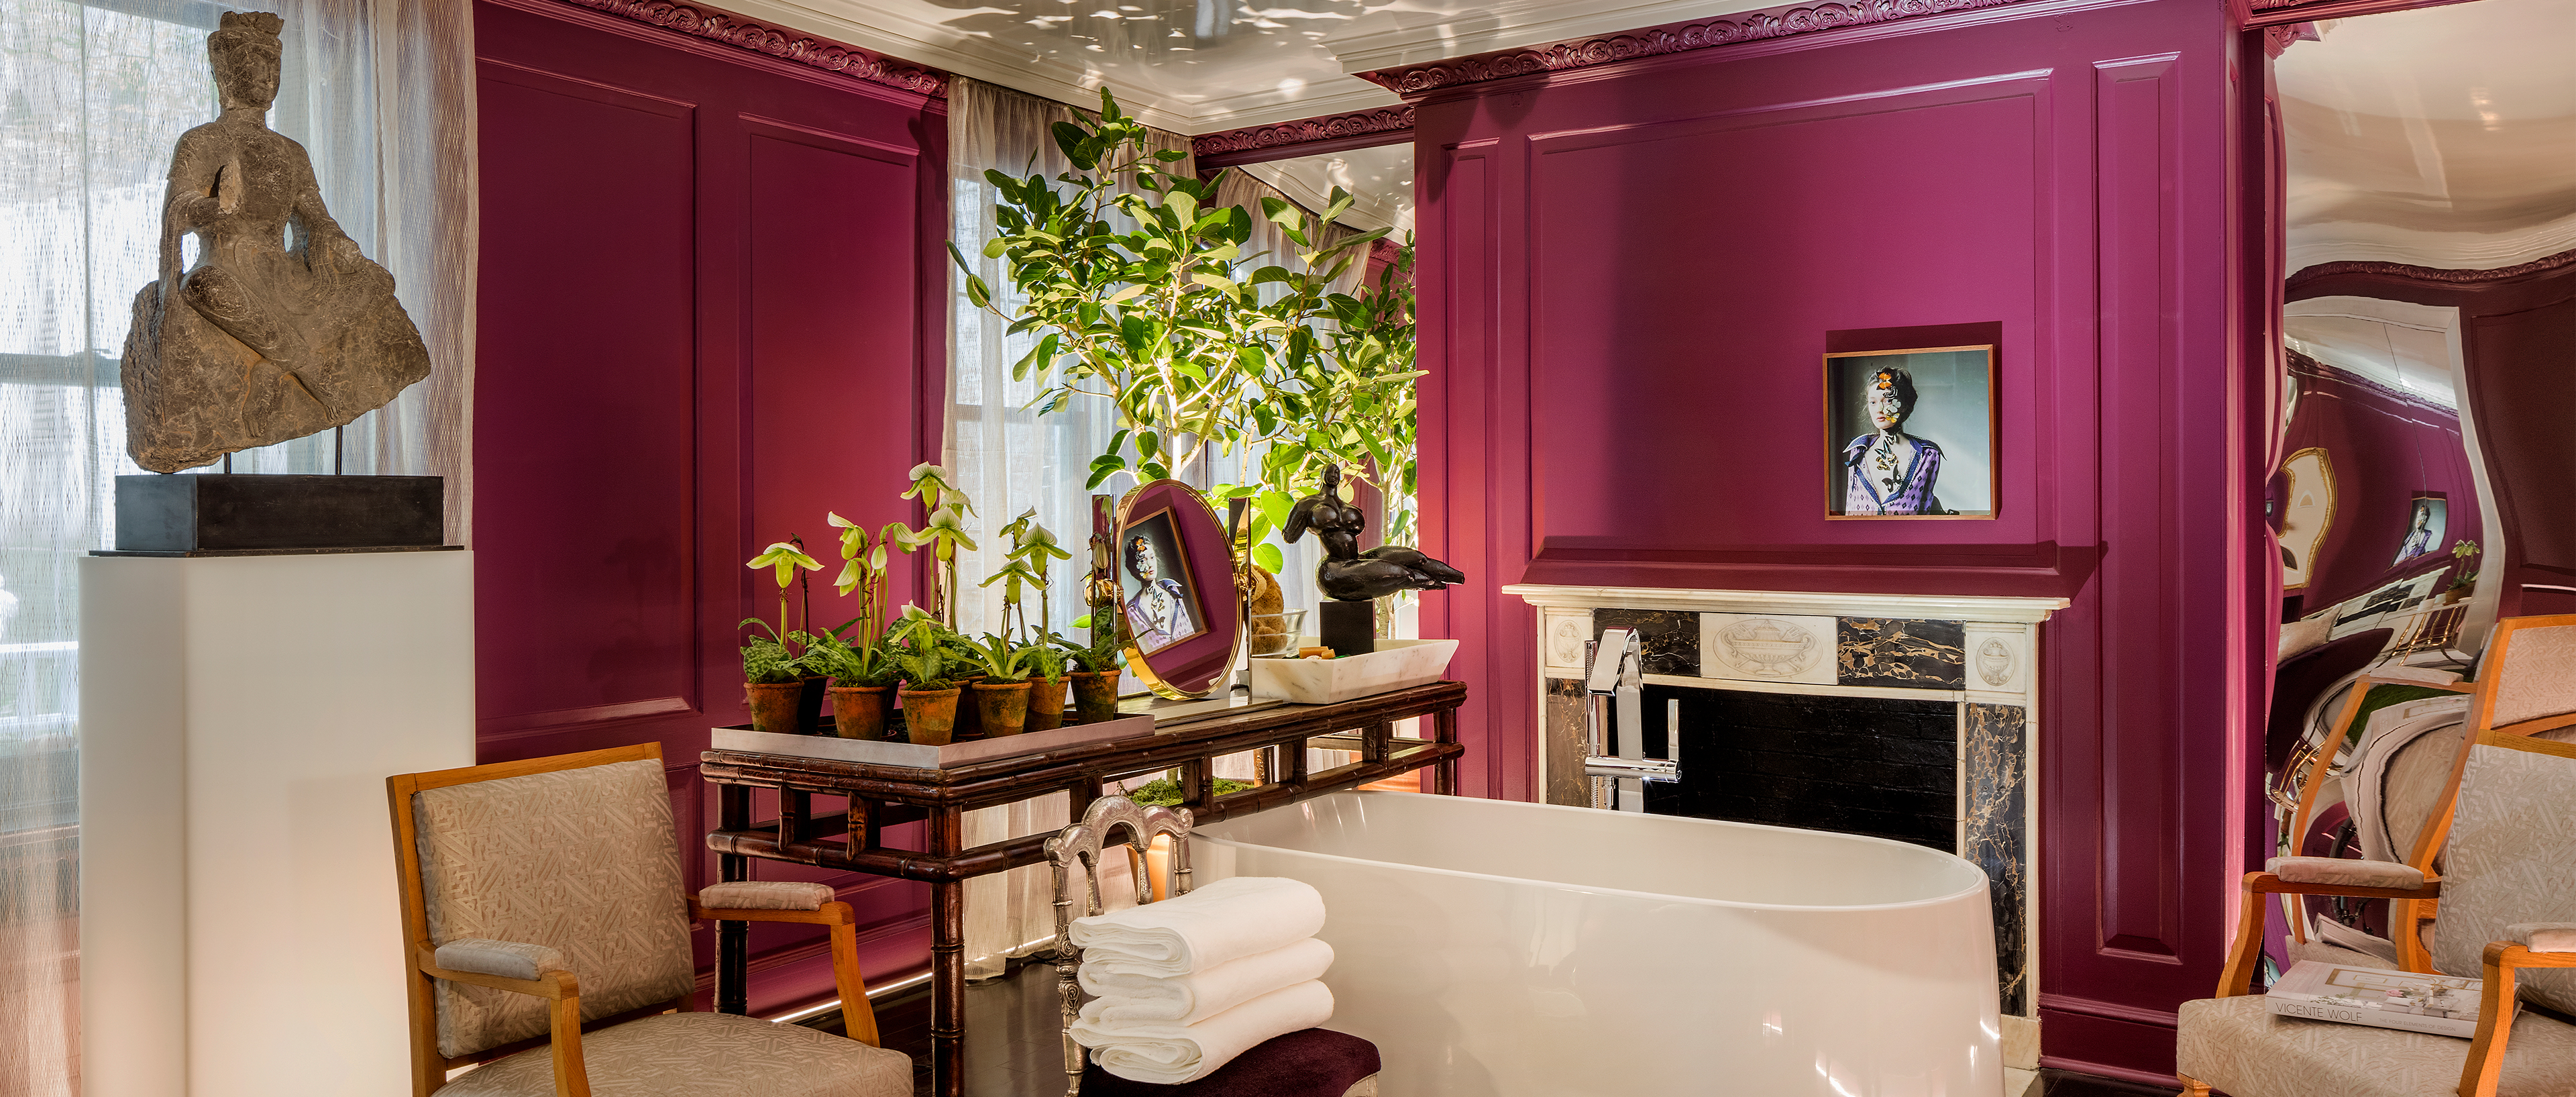 Vicente Wolf's unique design in Kips Bay Decorator Show House